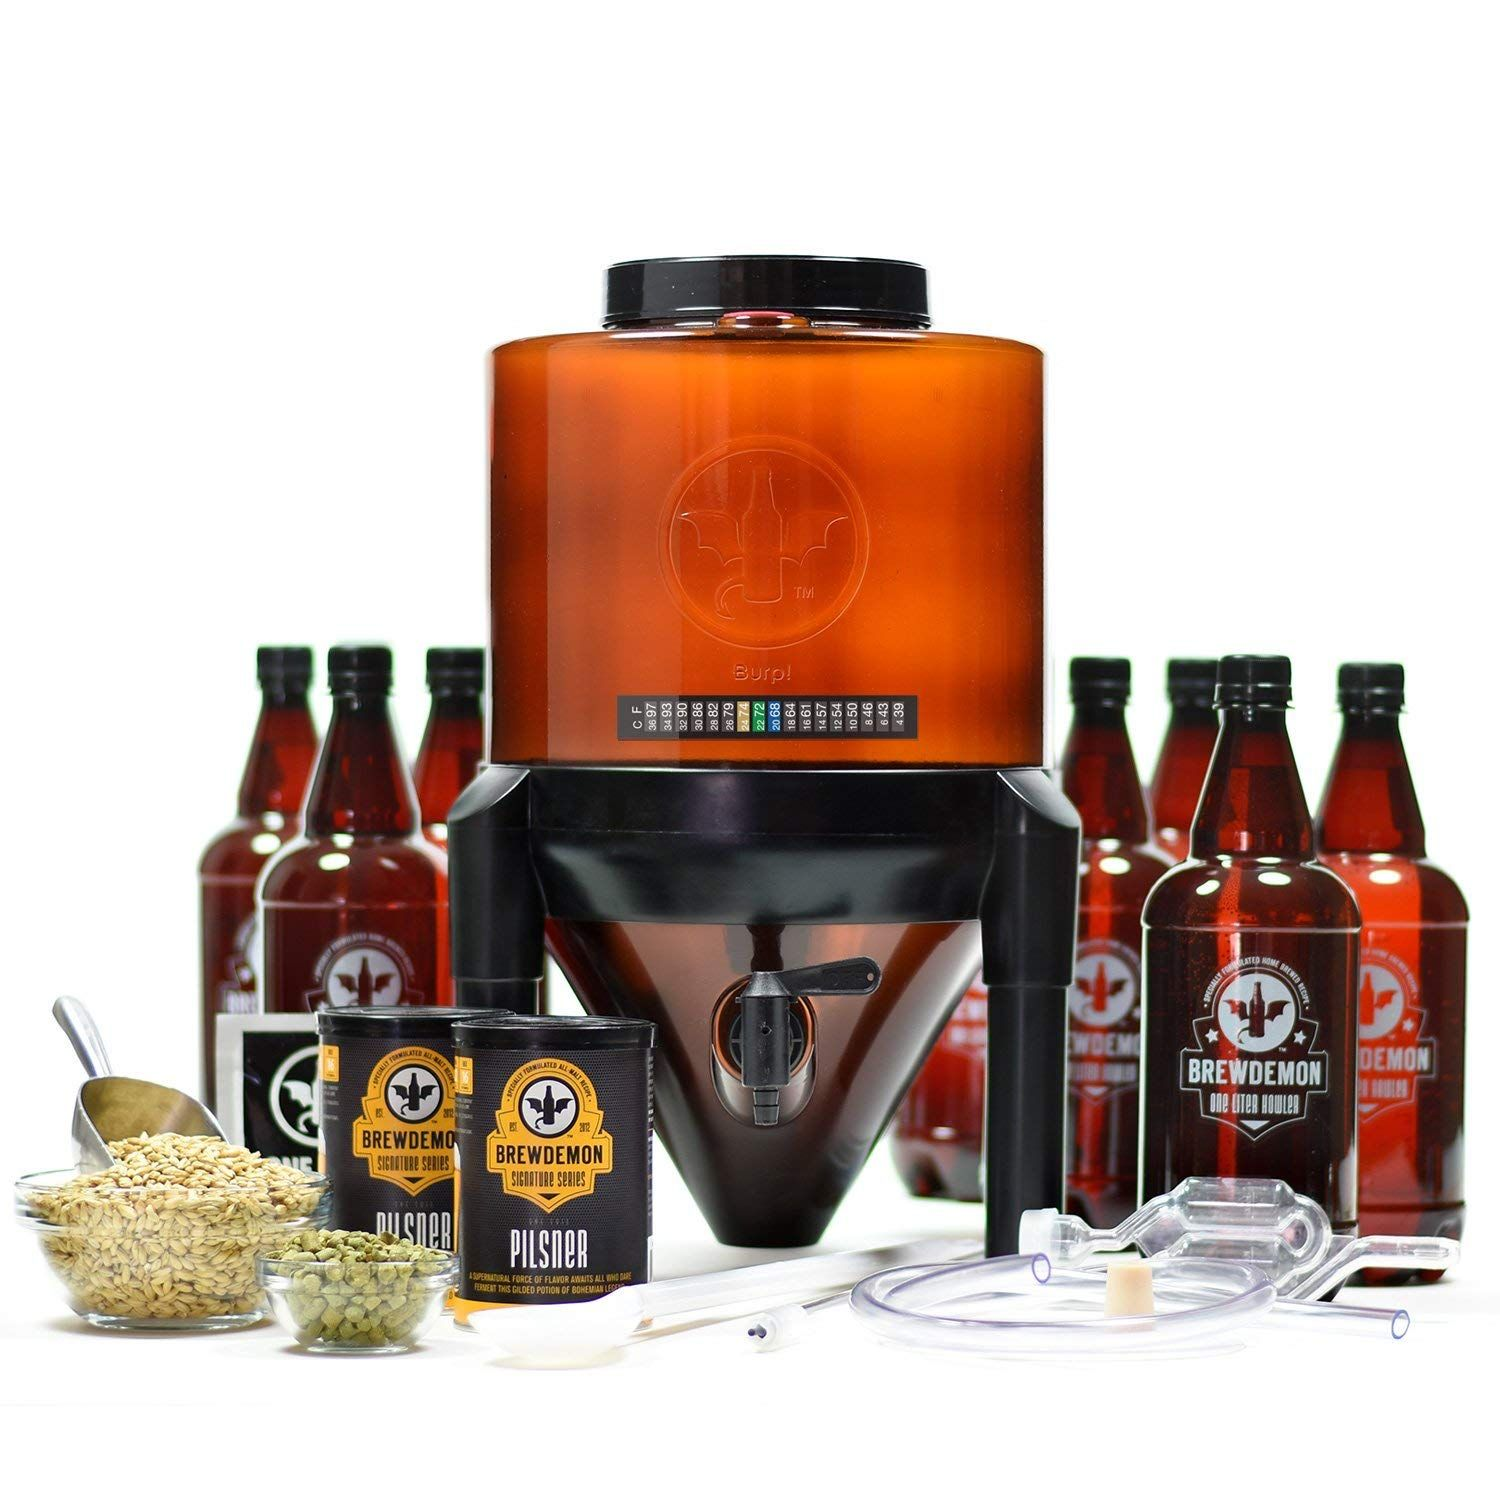 12th Anniversary Gifts For Him Under 150 Thebestanniversarygifts Beer Making Kits Beer Brewing Kits Beer Kit